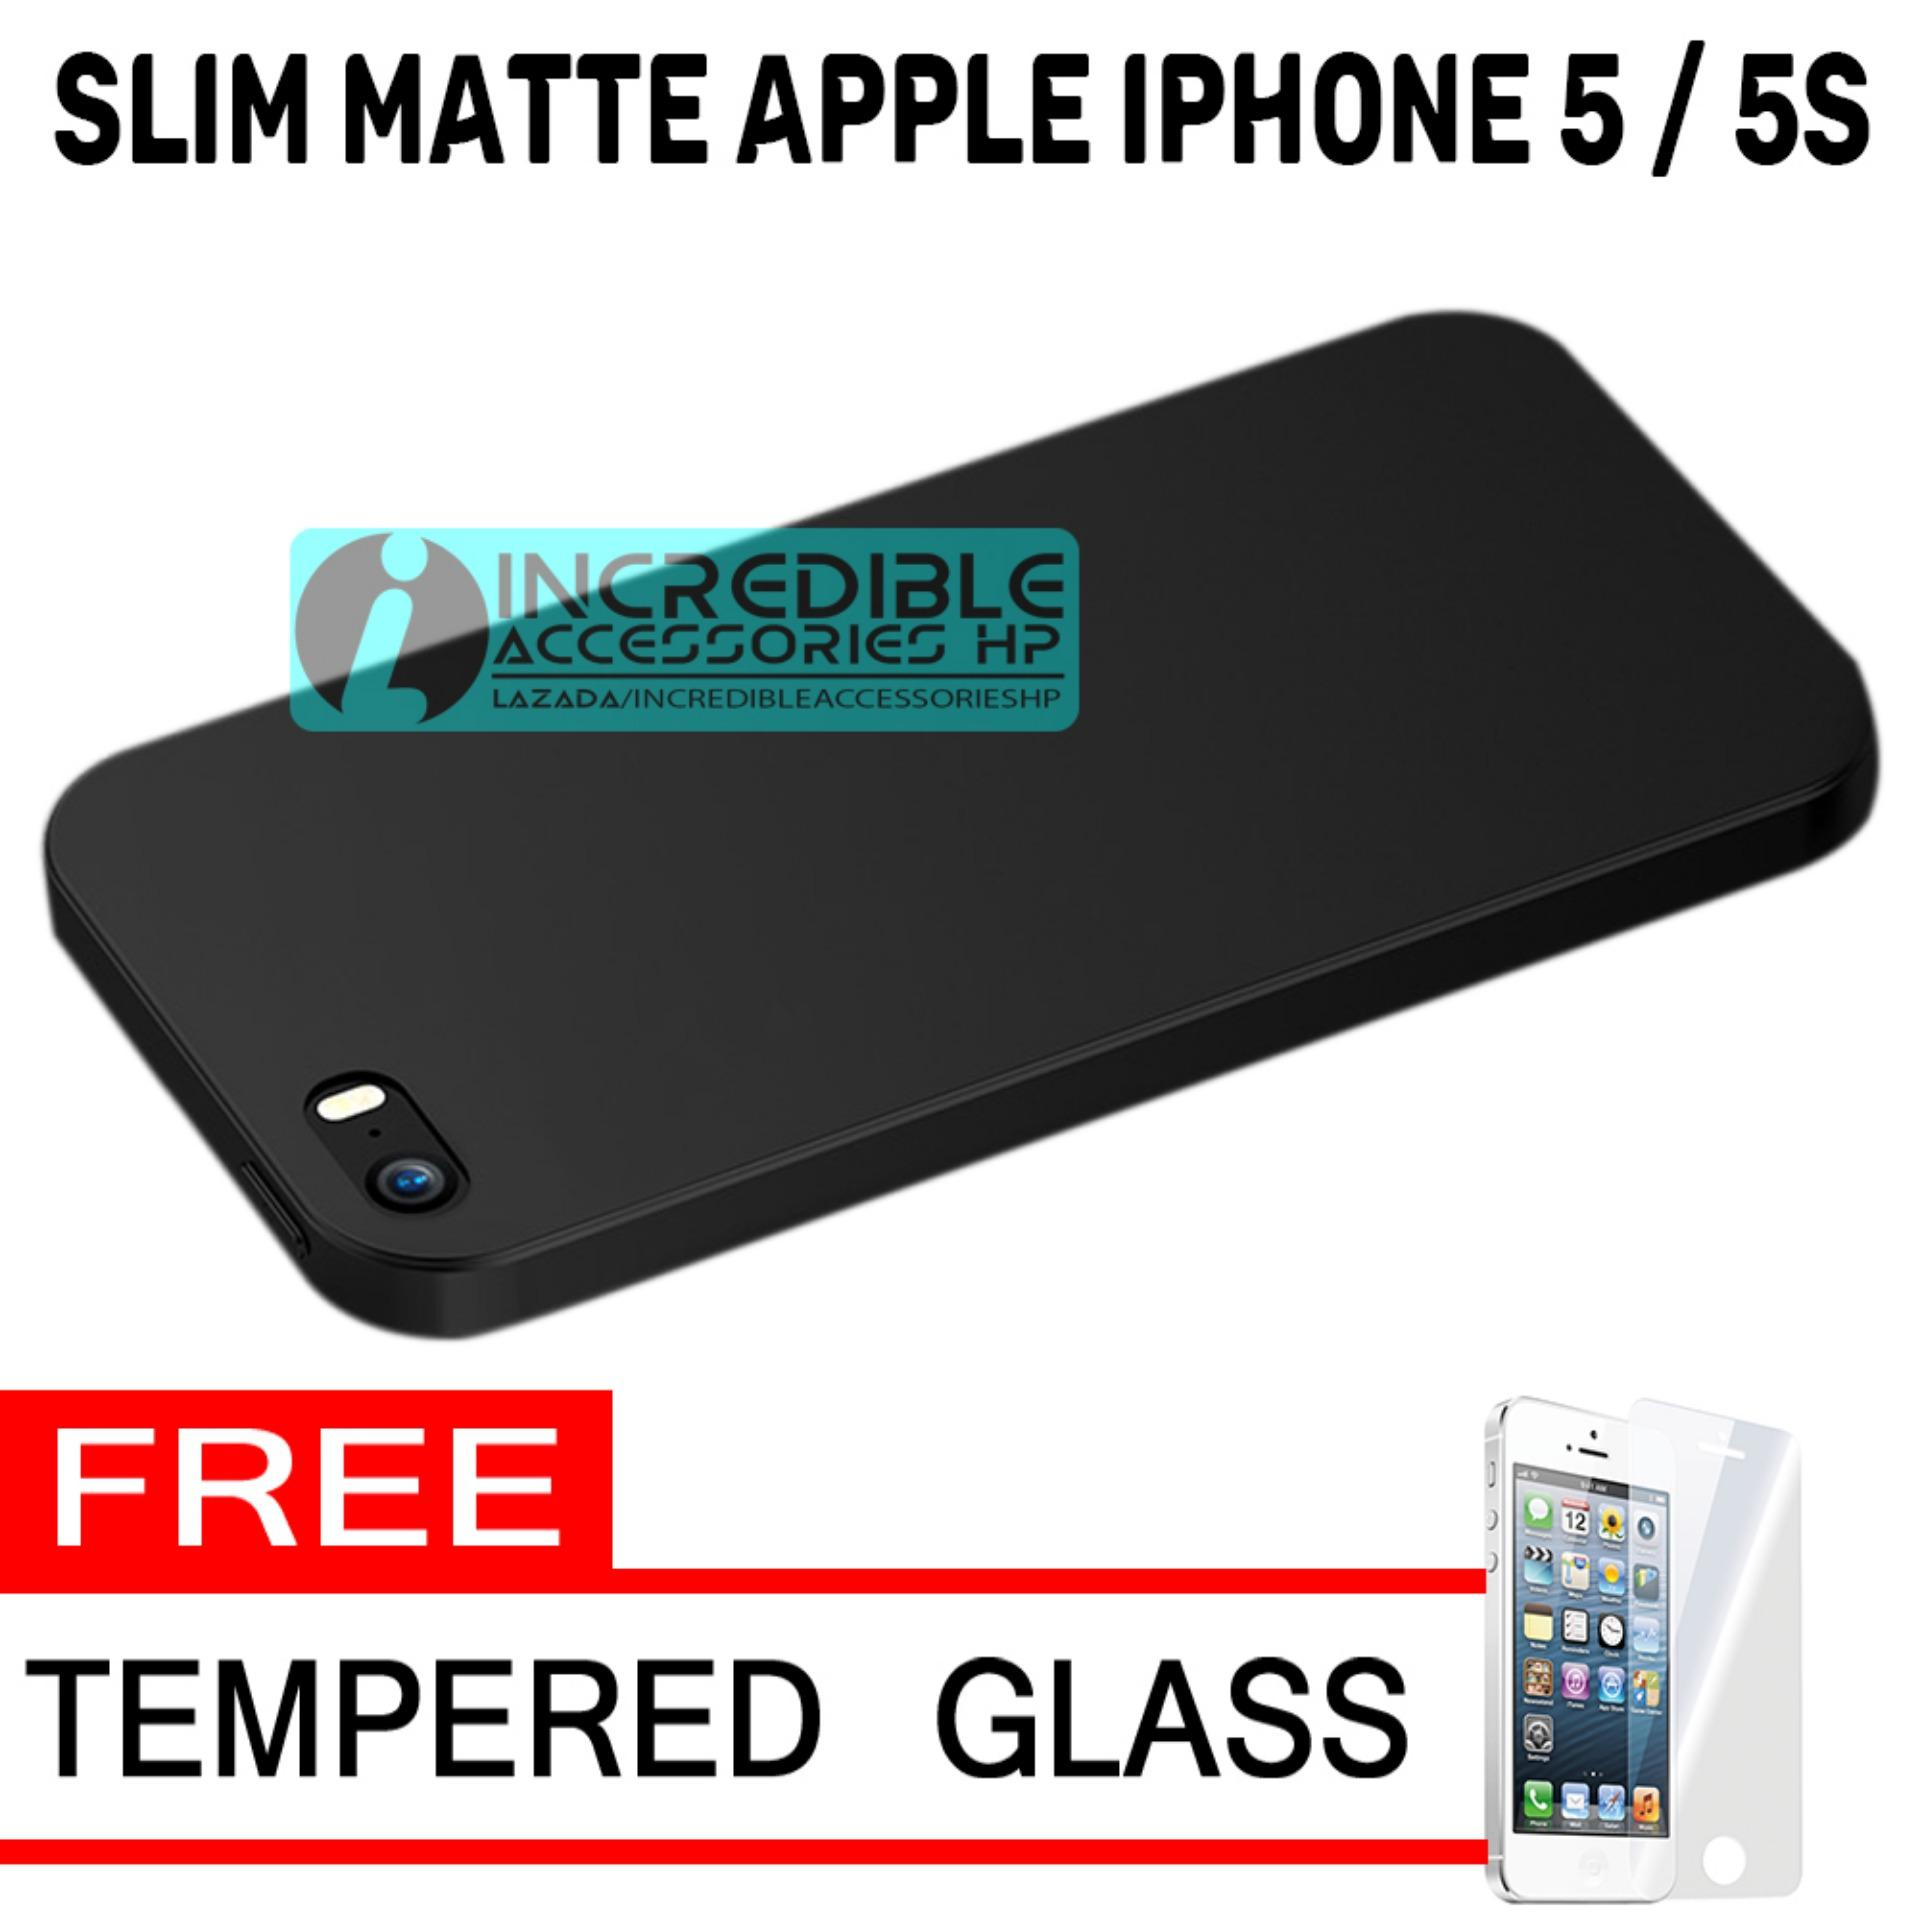 Anti Fingerprint Ultraslim Hybrid Case Baby Soft Babby Skin Softase Silicon Matte  for Apple iPhone 5 / 5s - Black + Free Tempered Glass